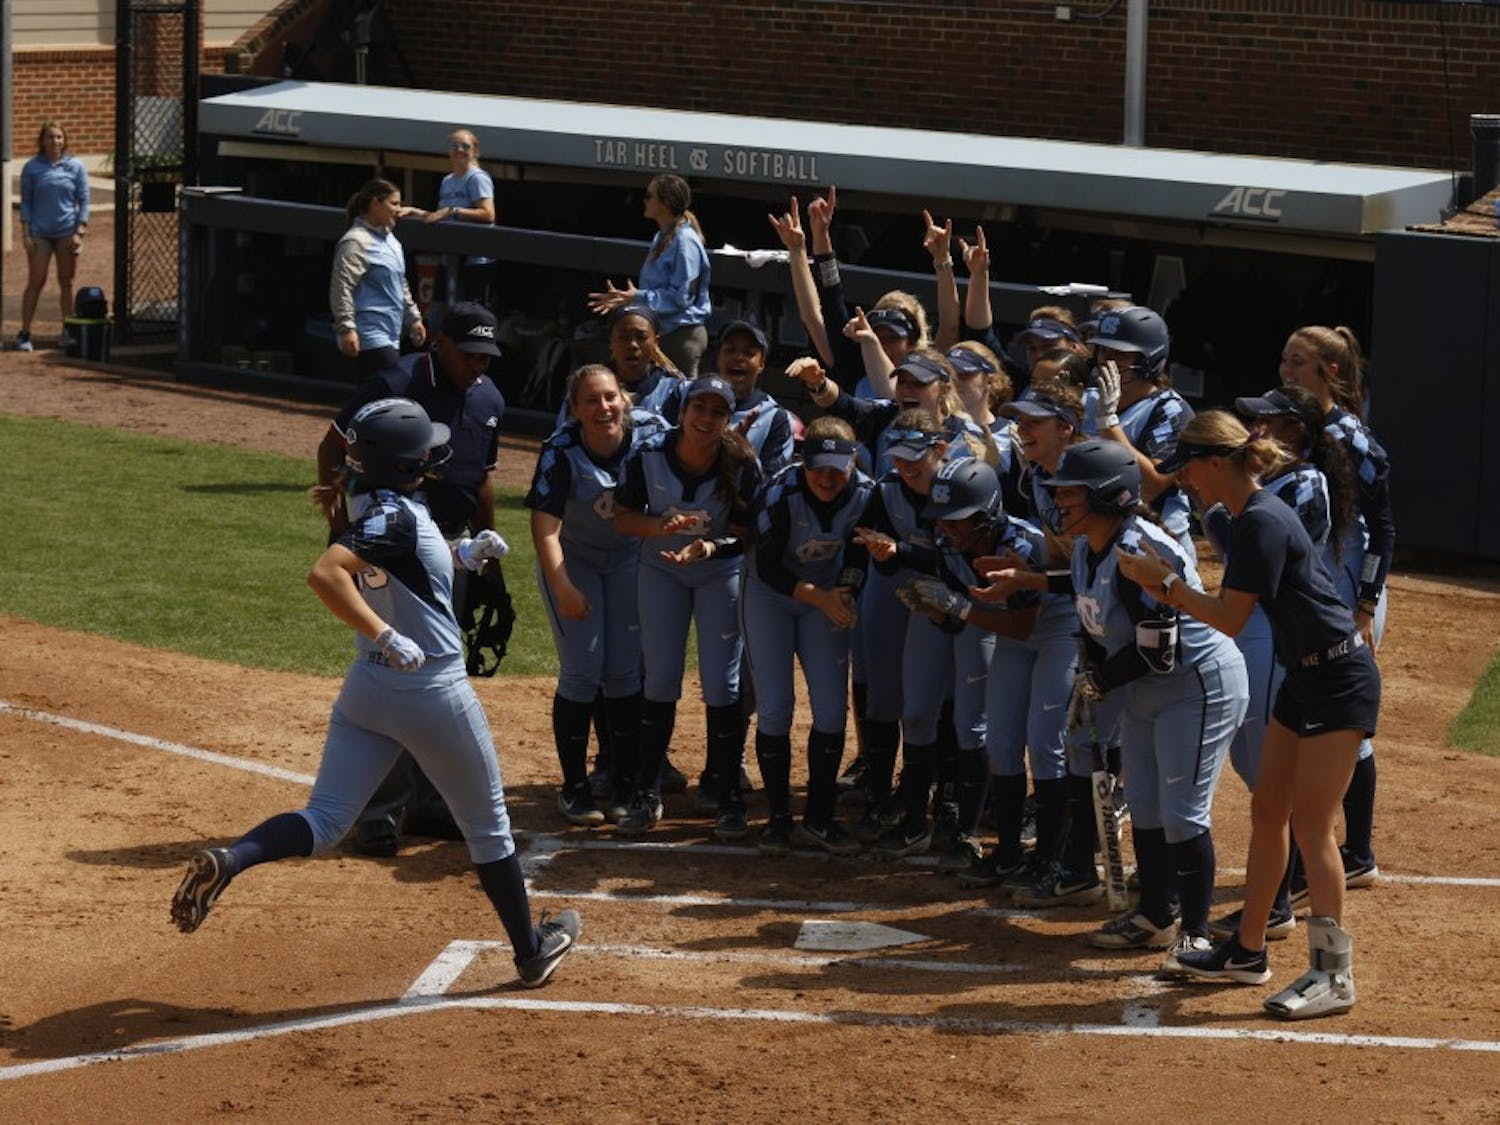 Sophomore catcher and first baseman Megan Dray is welcomed by her team into home plate during UNC's double header against the University of Virginia. The Tar Heels won both games 8-0 at the G. Anderson Softball Stadium on Sunday, Apr. 7, 2019.